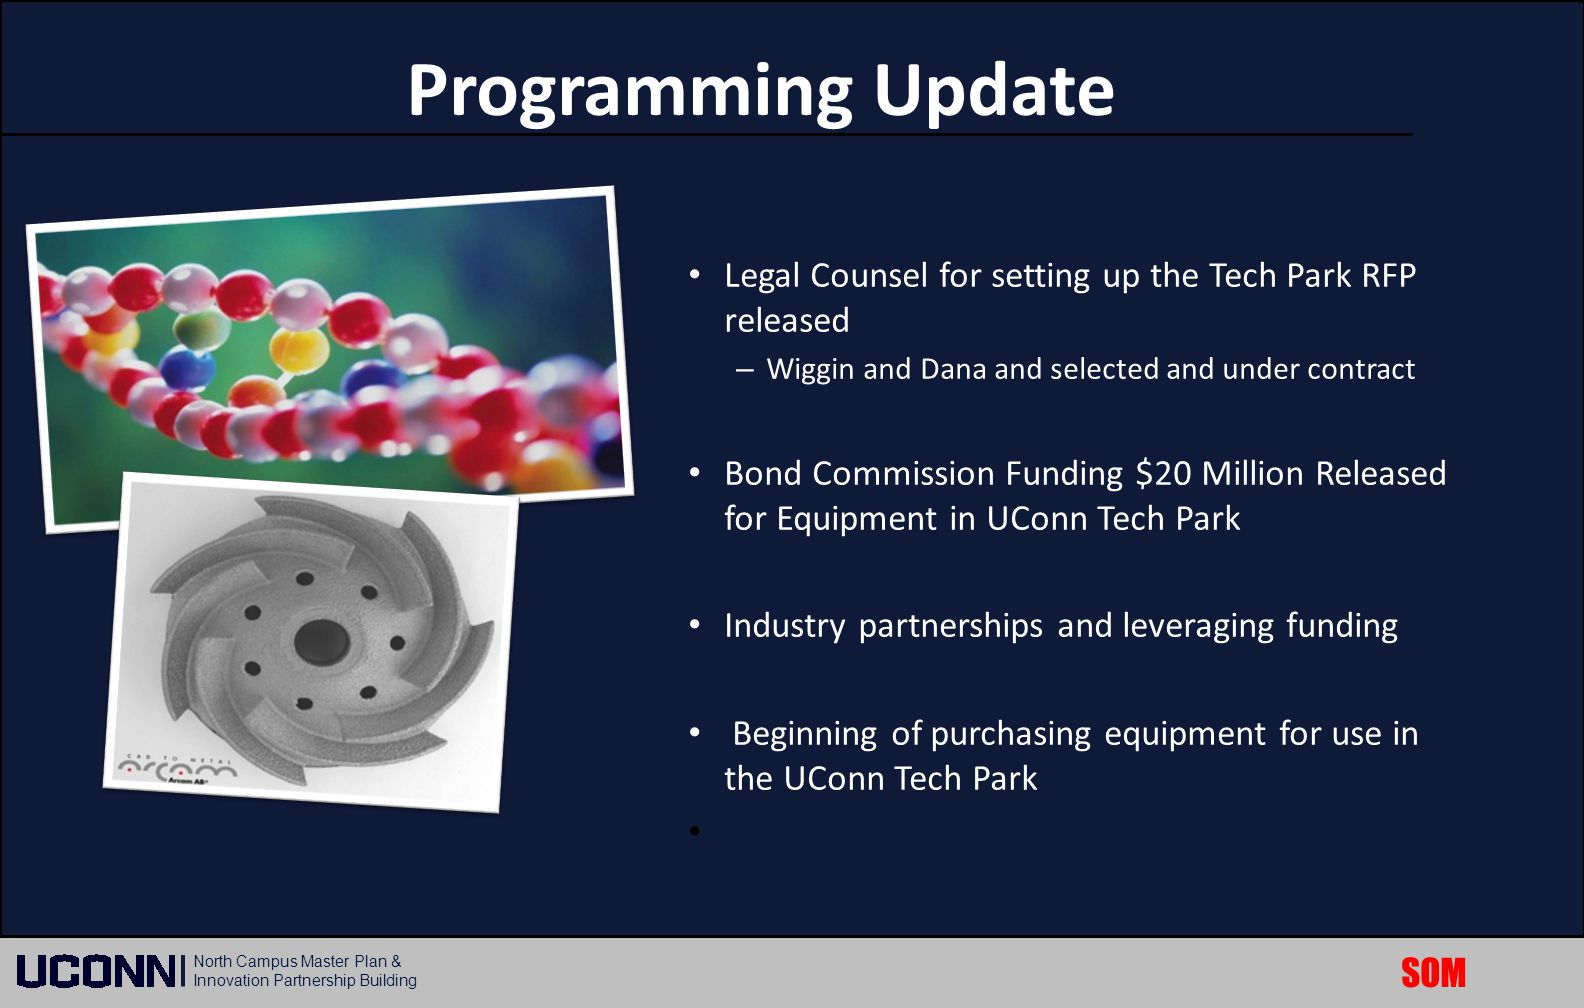 Programming Update Legal Counsel for setting up the Tech Park RFP released. Wiggin and Dana and selected and under contract.